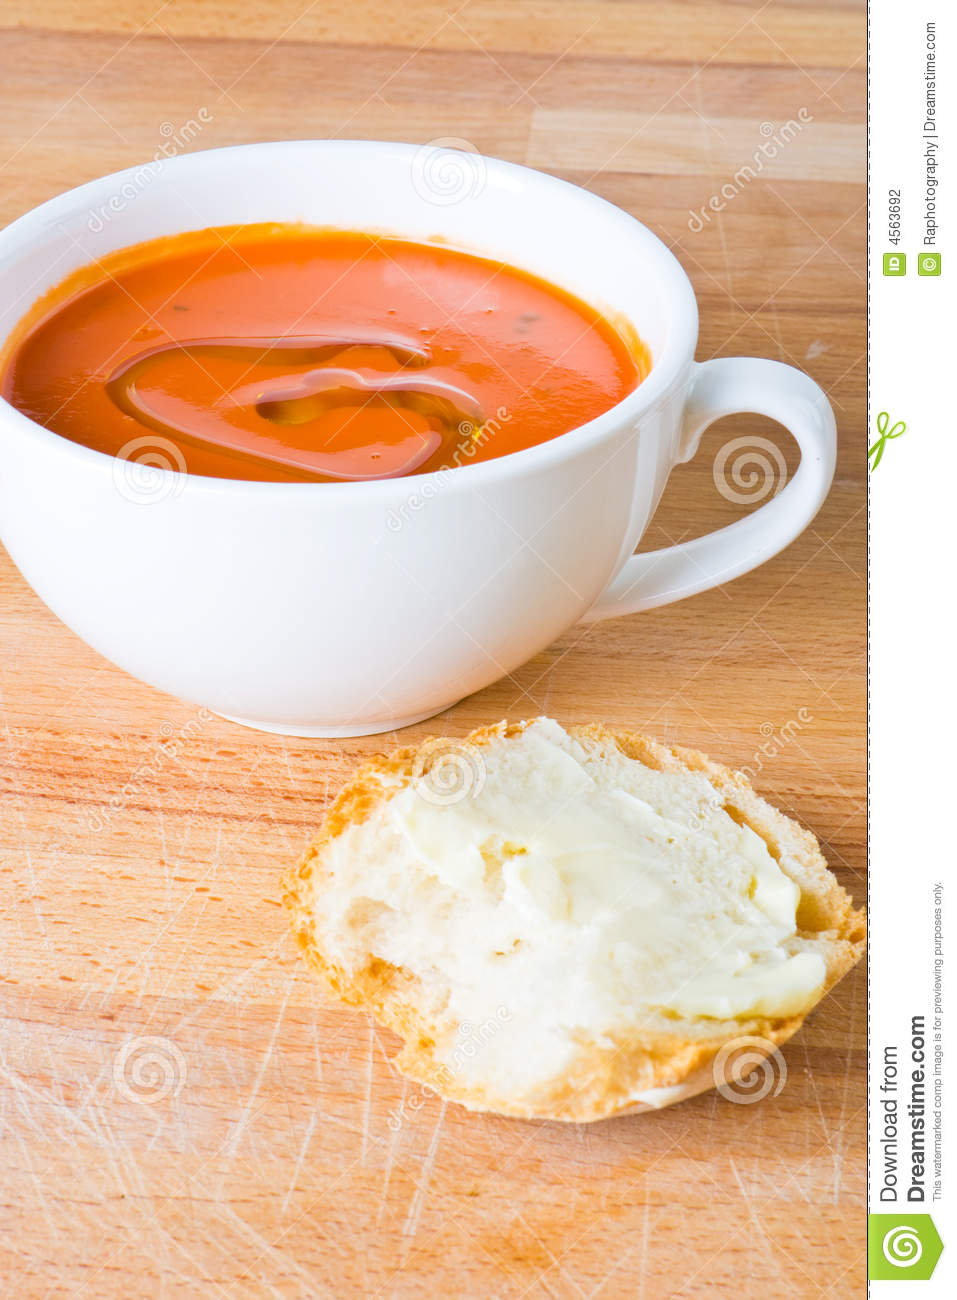 Tomato Soup With Bread Stock Photography - Image: 4563692